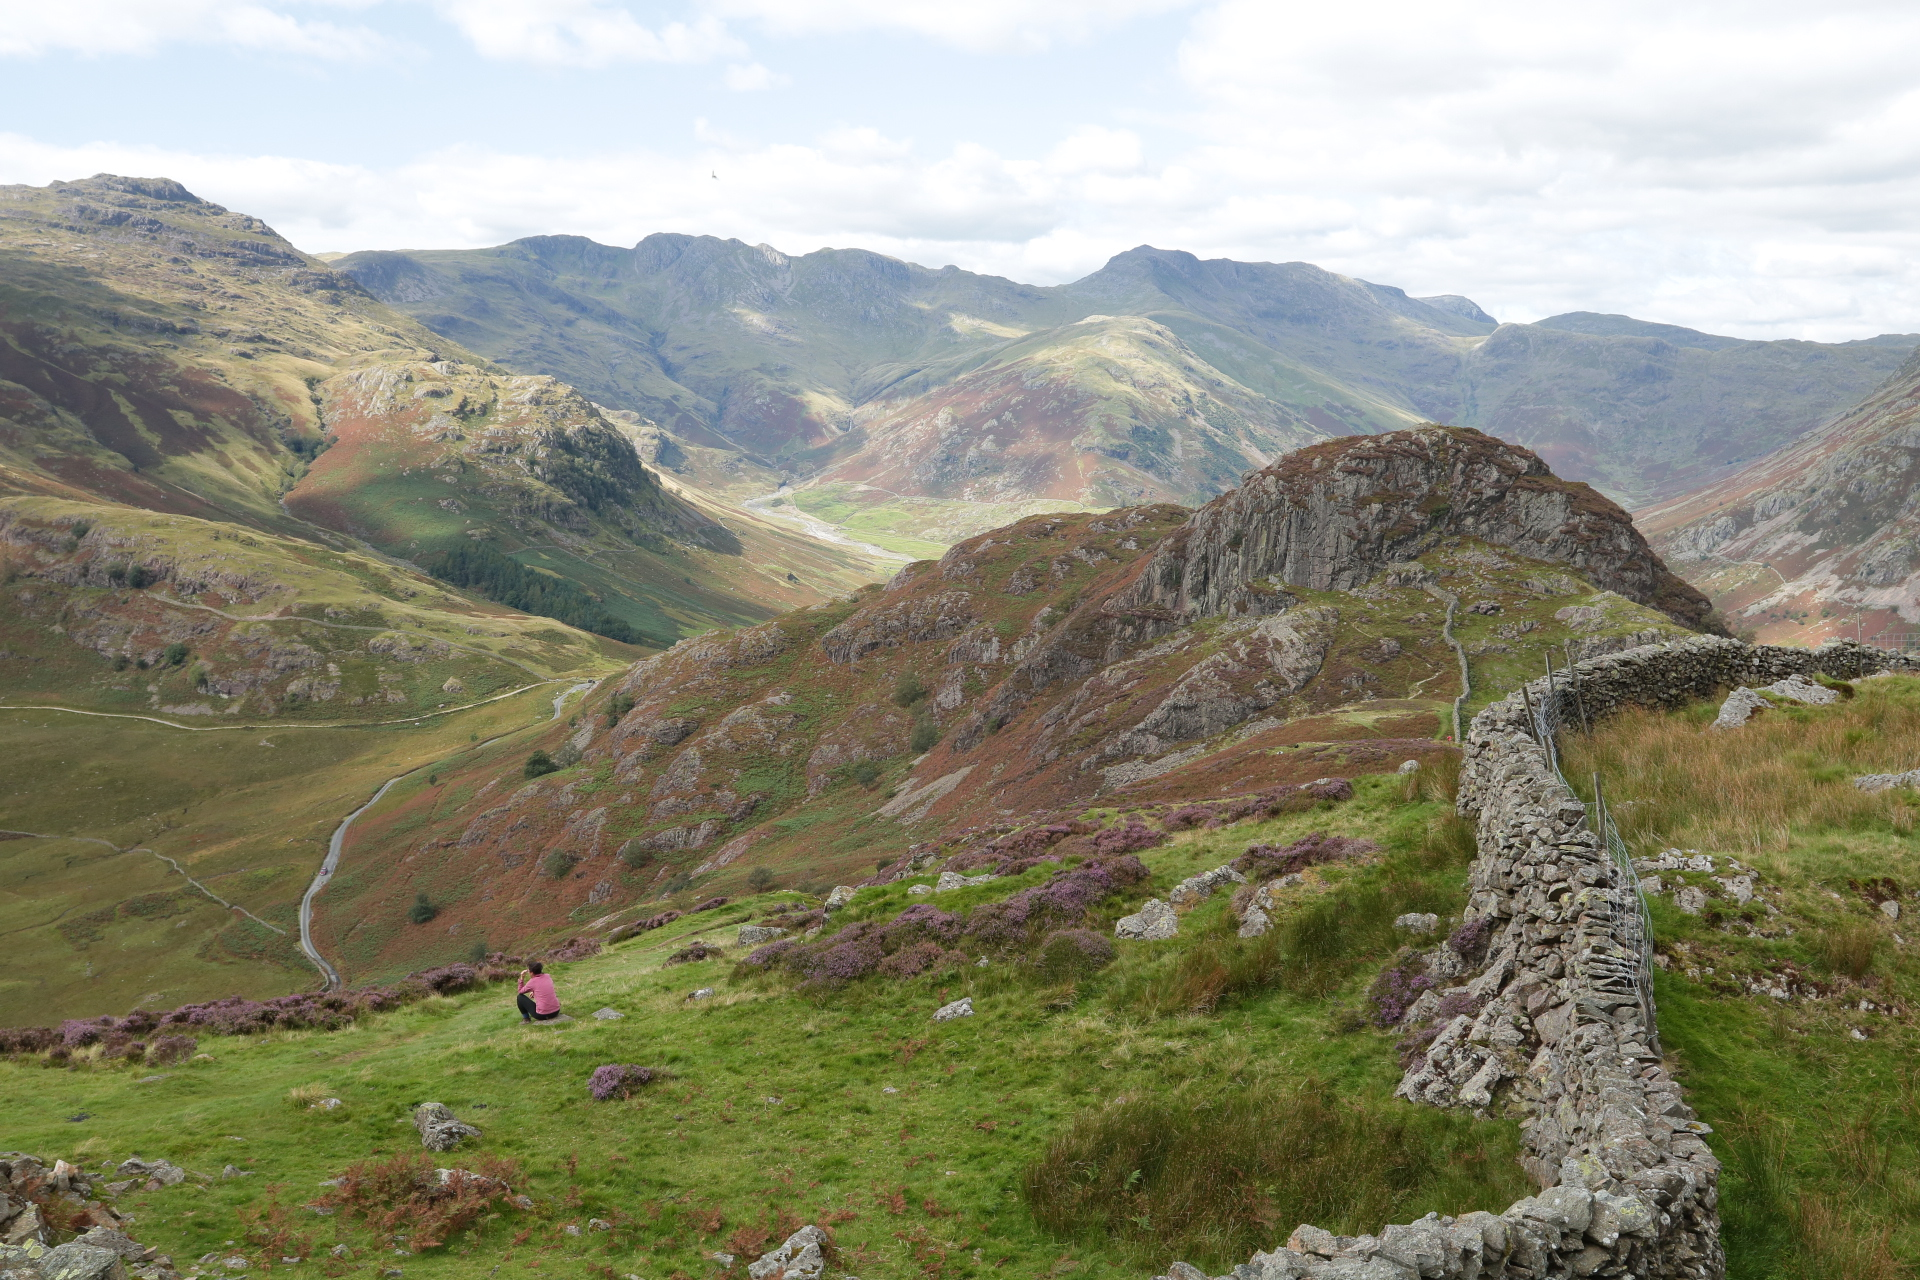 Image shows a wide view of the Lake District mountains. The grass is green with purple and red shrubs. Deep valleys are visible and the sun is shining in spots around the hills. You can see Sophia sitting on a rock.